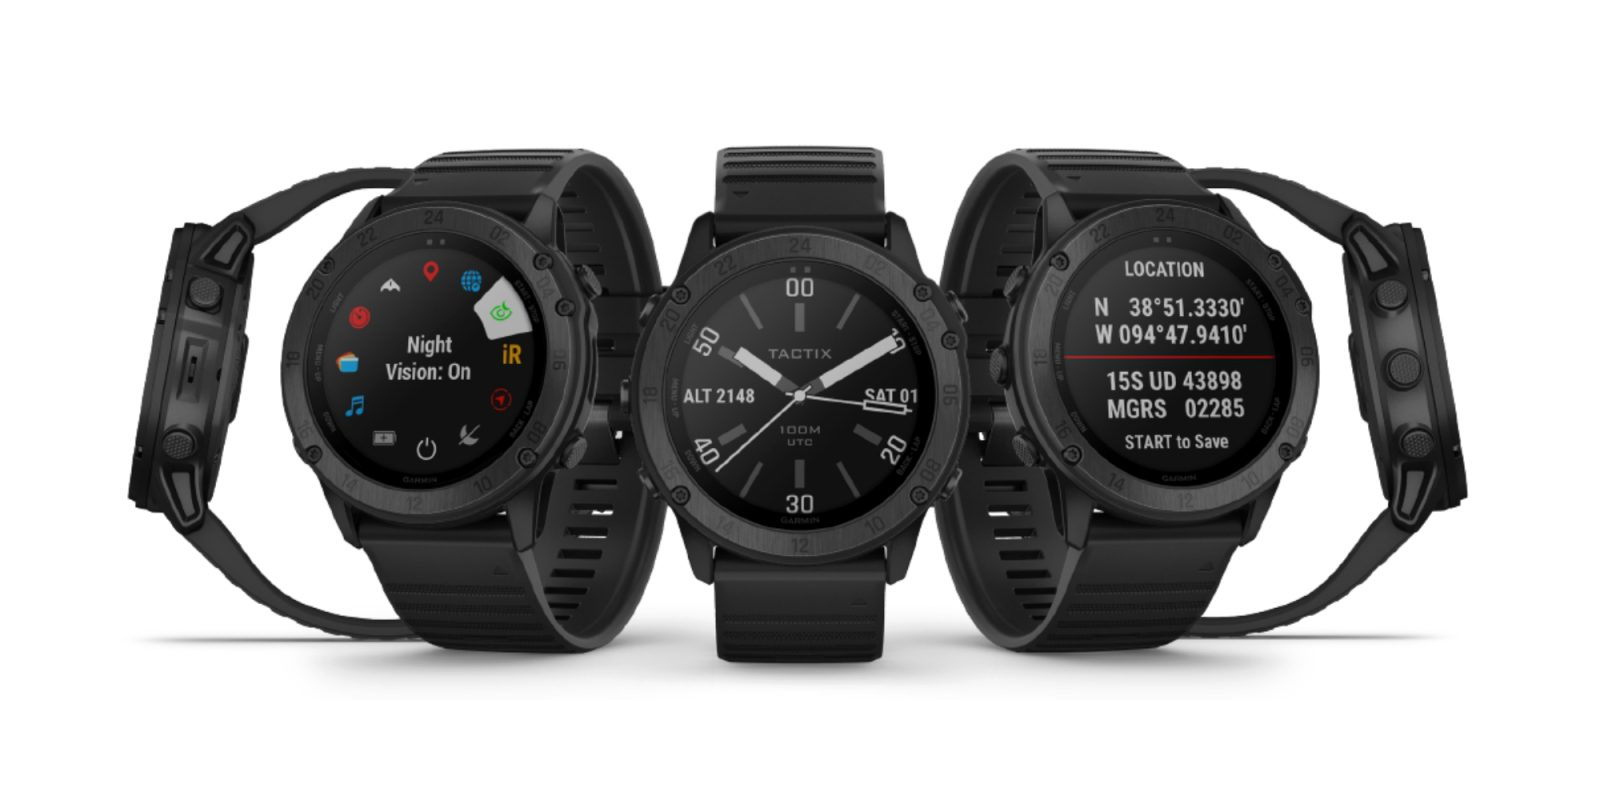 Garmin's new Tactix Delta smartwatch looks designed for a privacy-conscious Navy SEAL